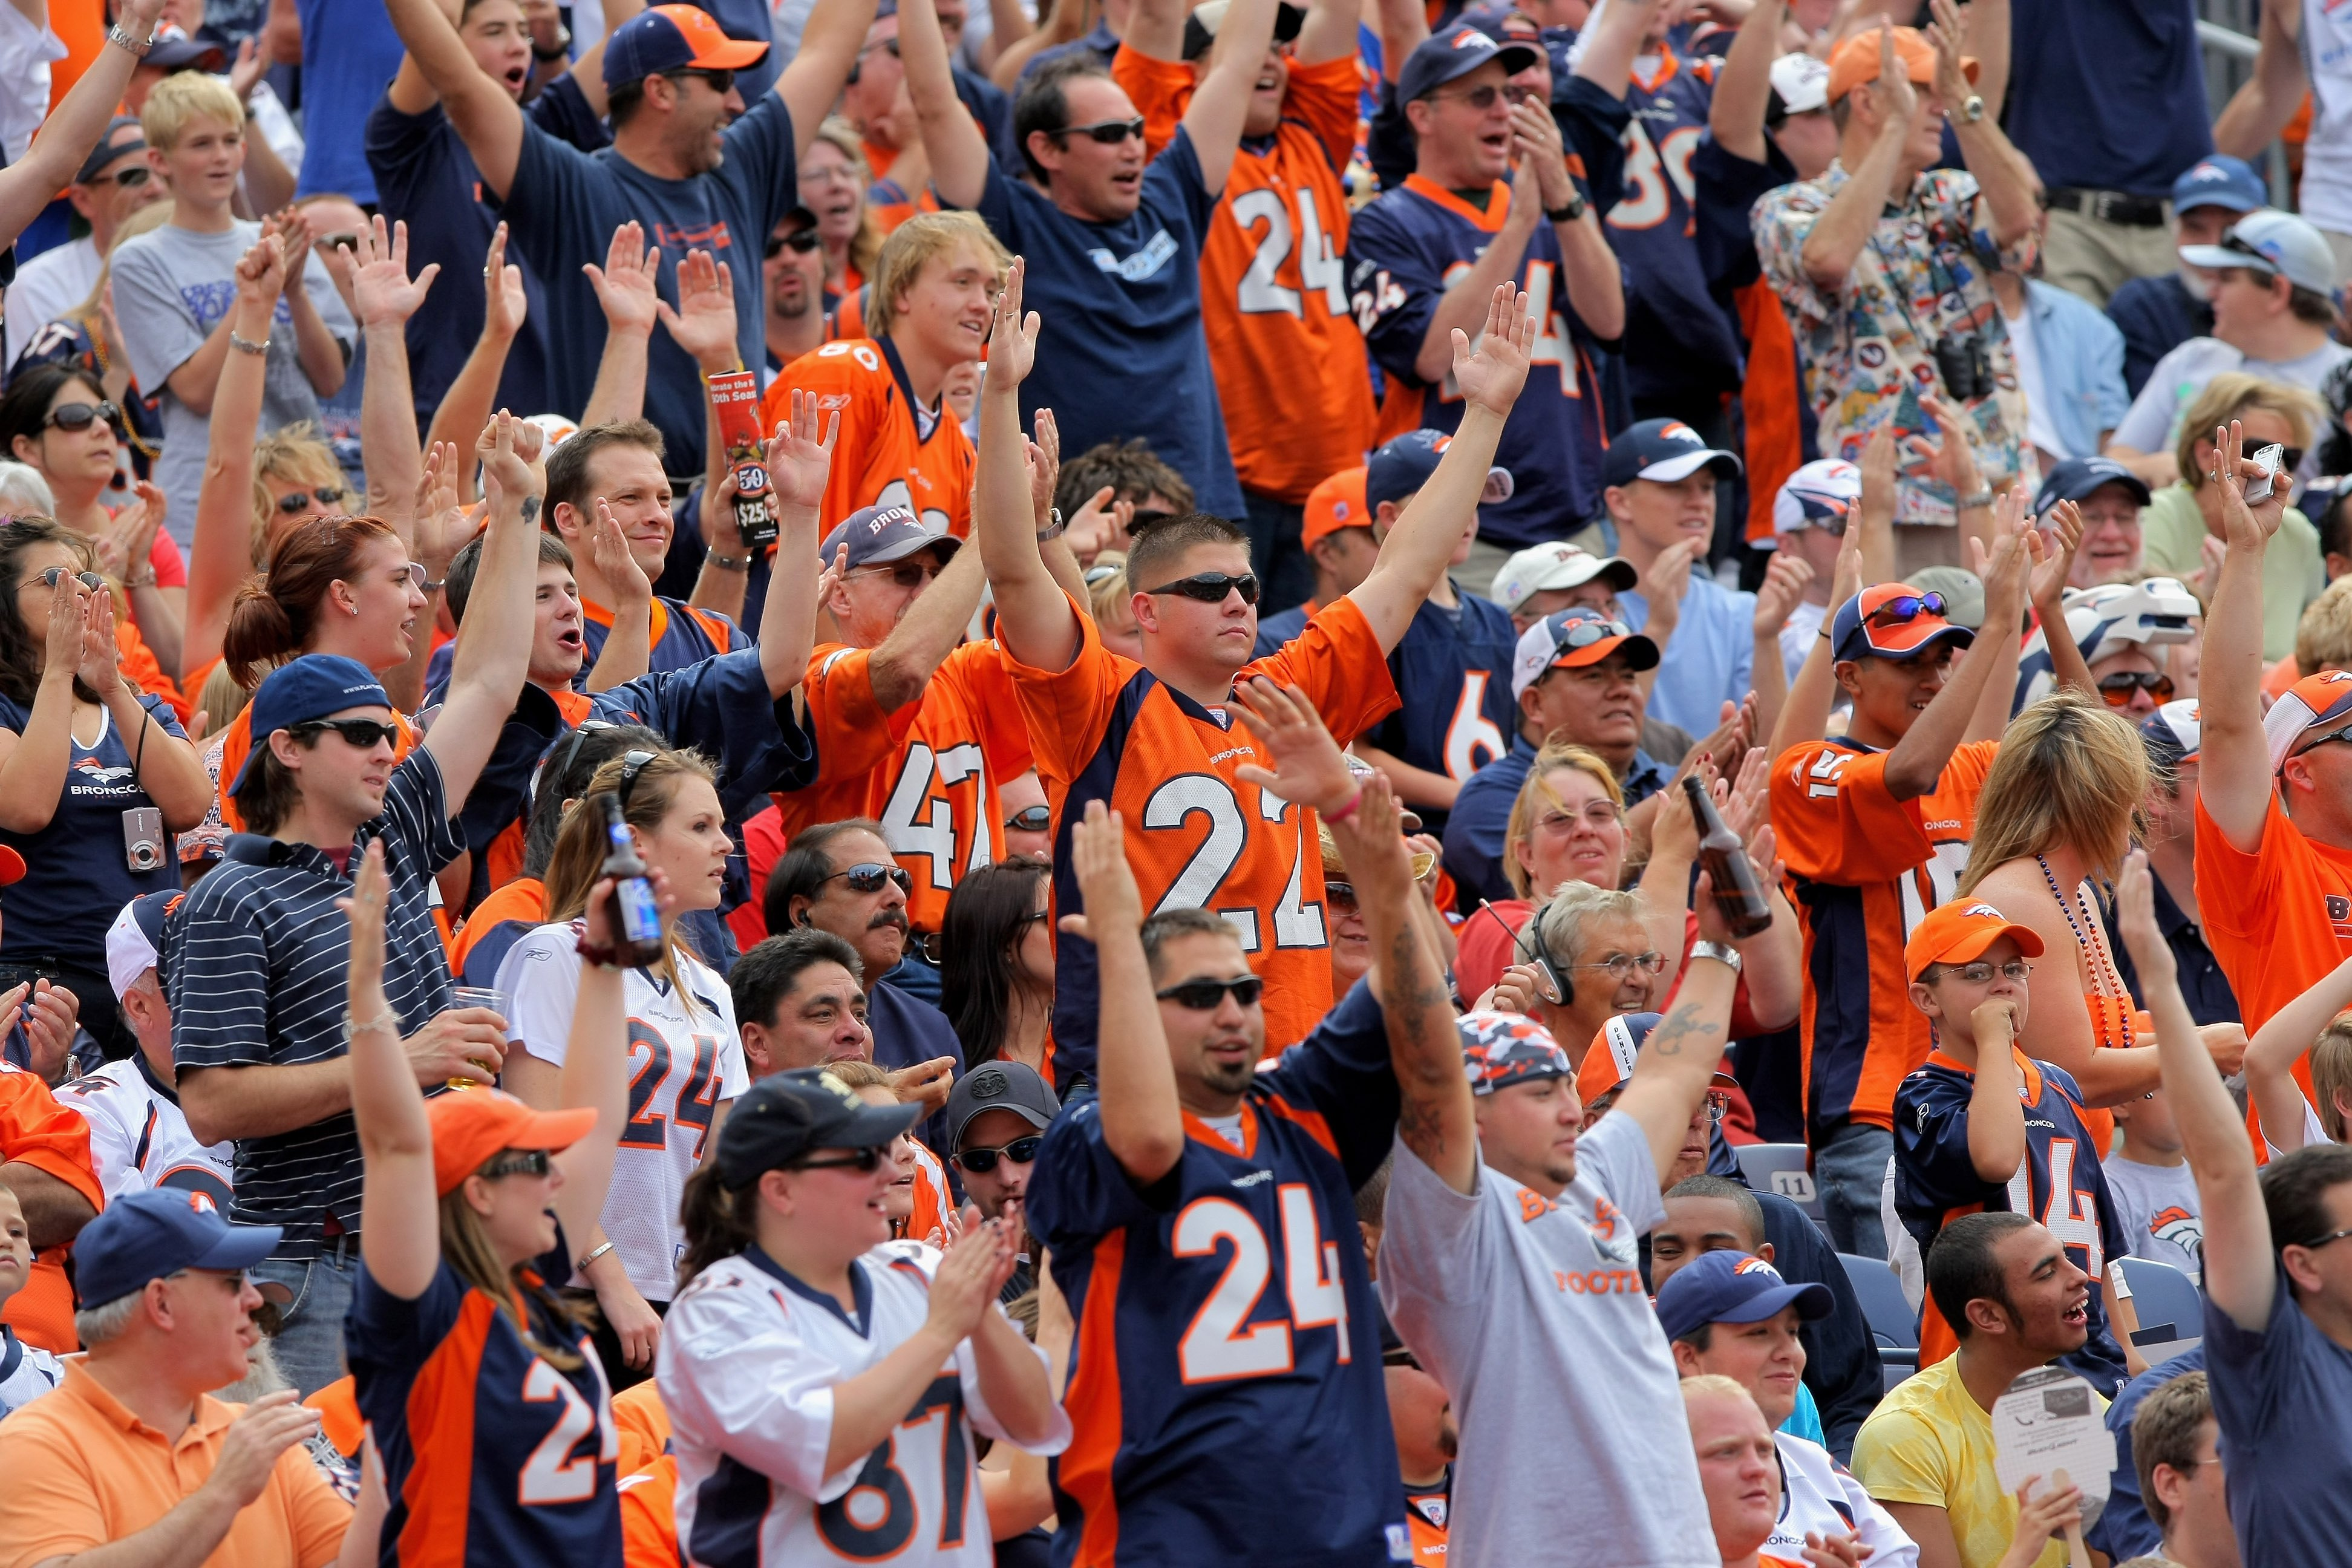 DENVER - SEPTEMBER 20:  Fans of the Denver Broncos cheer a touchdown against the Cleveland Browns during NFL action at Invesco Field at Mile High on September 20, 2009 in Denver, Colorado. The Broncos defeated the Browns 27-6.  (Photo by Doug Pensinger/Ge